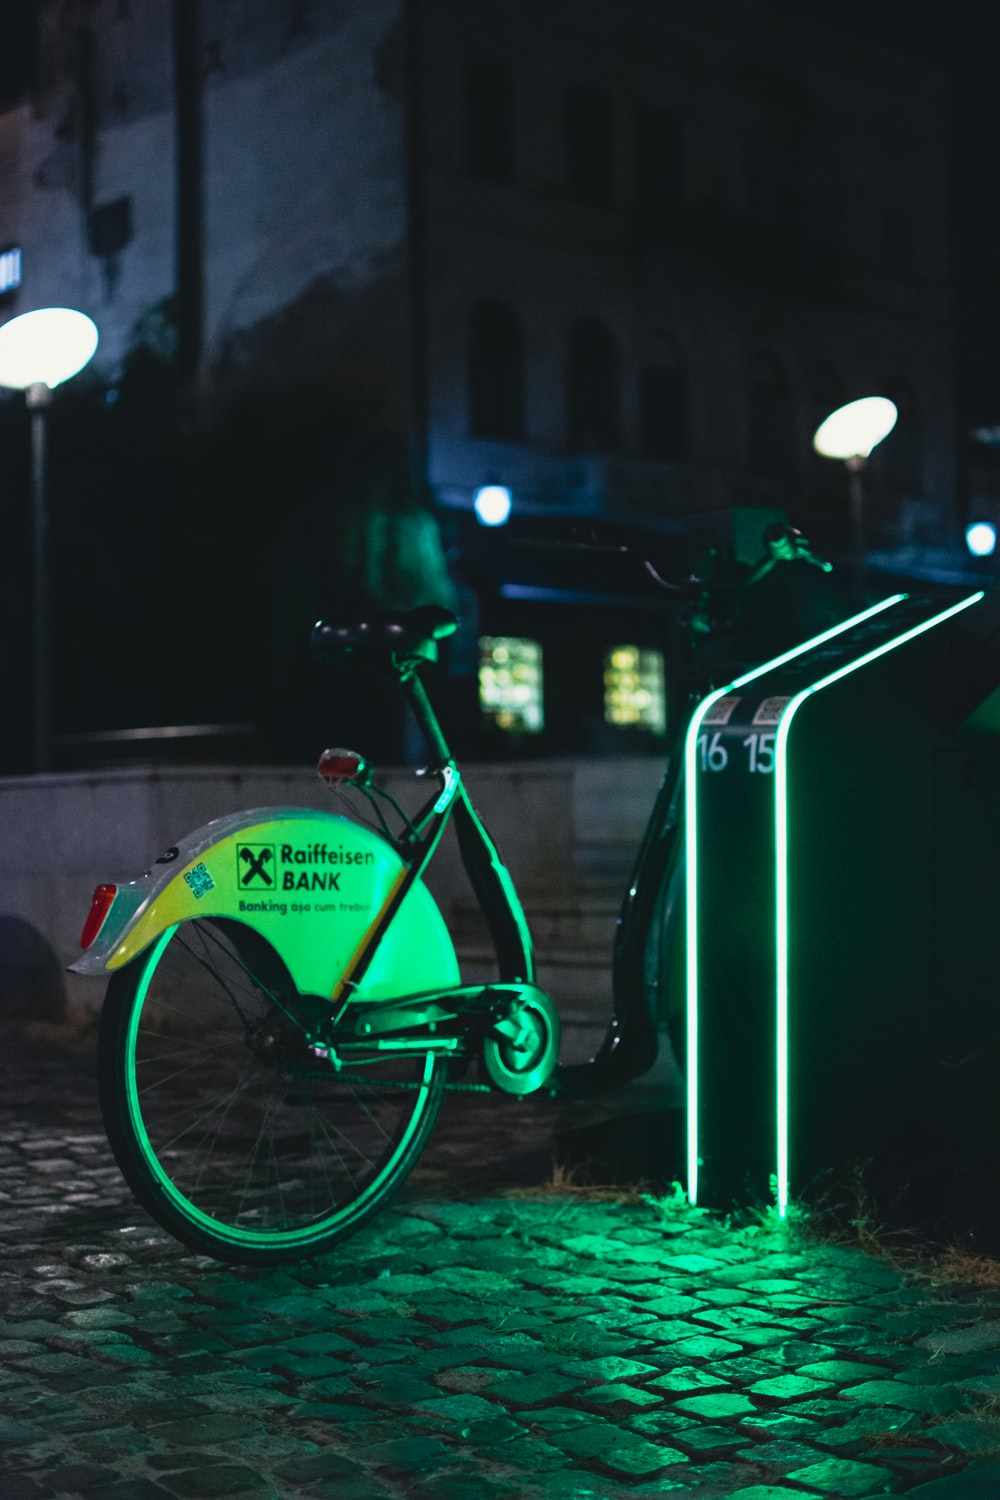 green city bike parked beside green metal post during night time